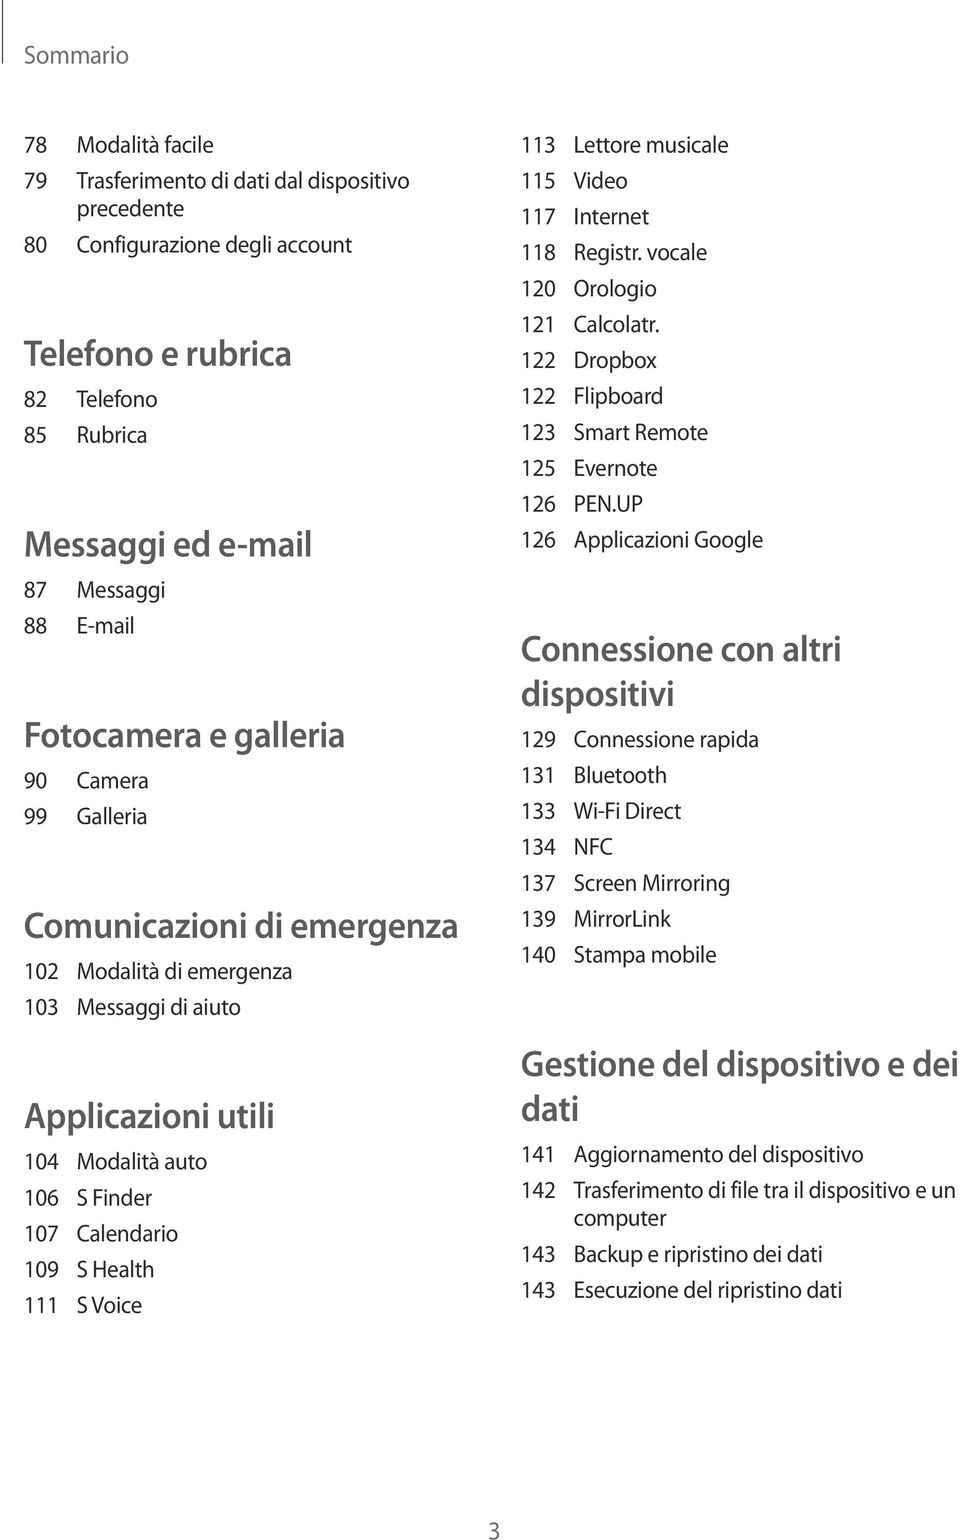 111 S Voice 113 Lettore musicale 115 Video 117 Internet 118 Registr. vocale 120 Orologio 121 Calcolatr. 122 Dropbox 122 Flipboard 123 Smart Remote 125 Evernote 126 PEN.